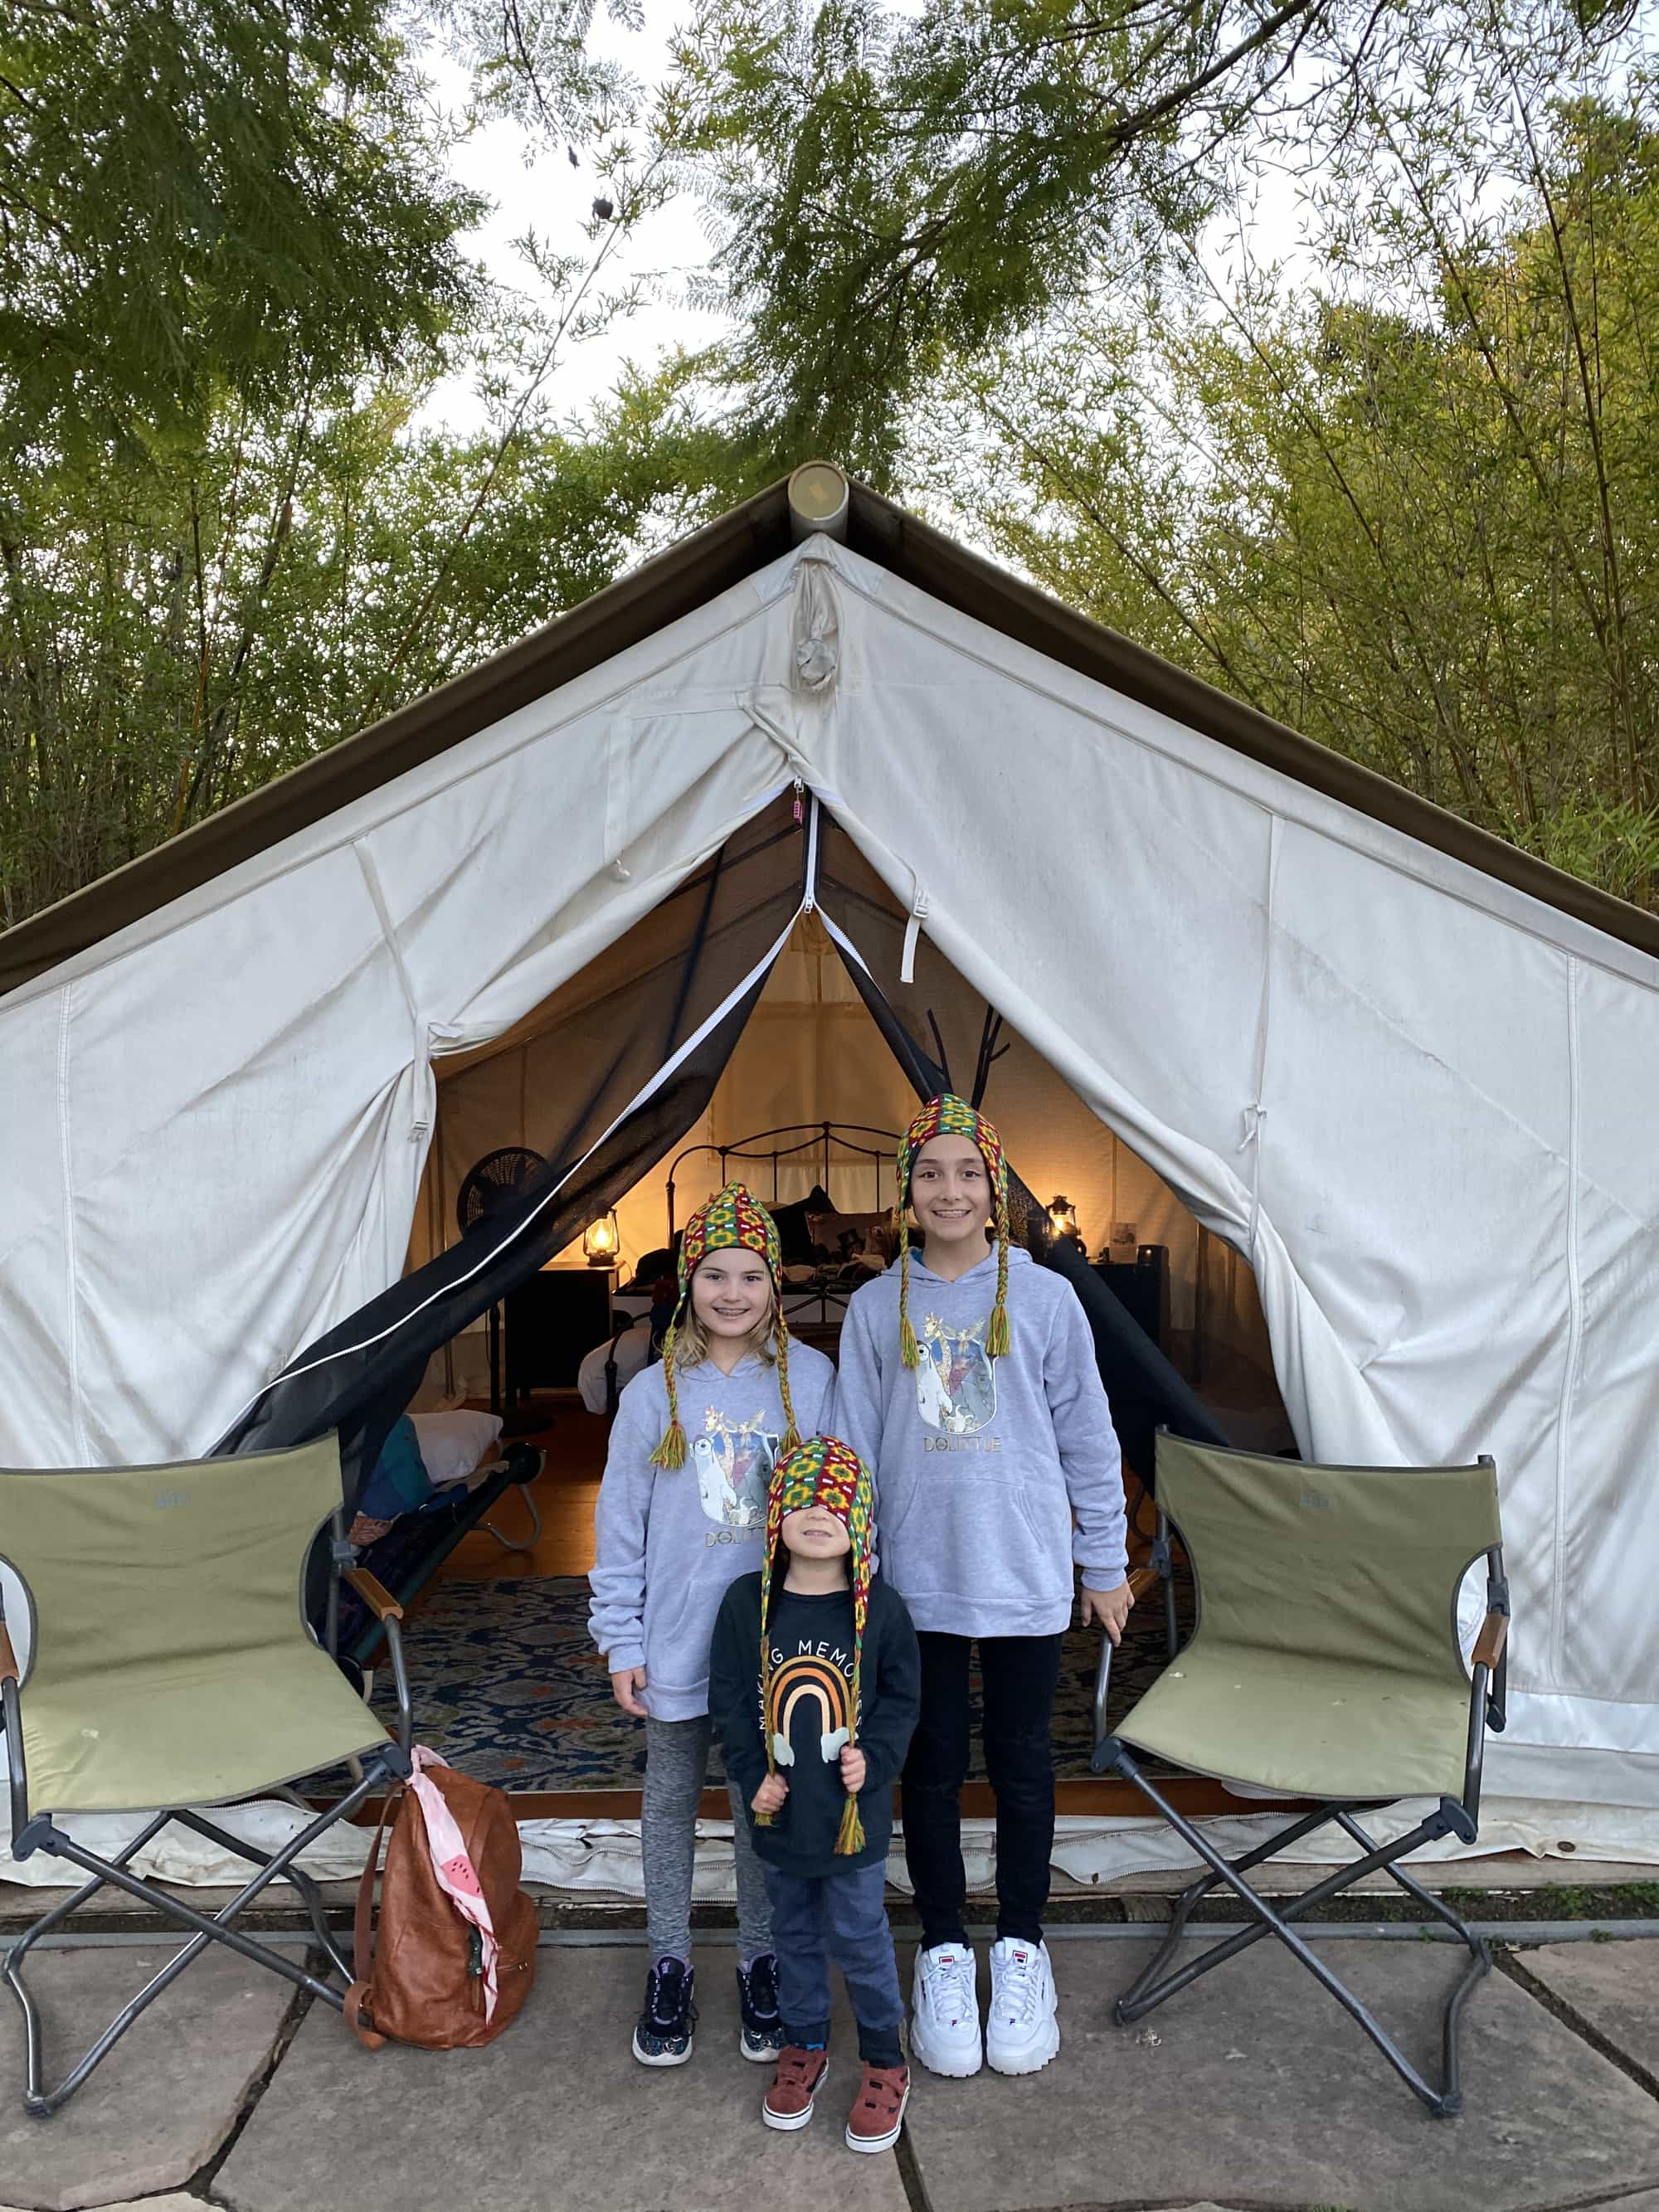 kids standing in front of tent